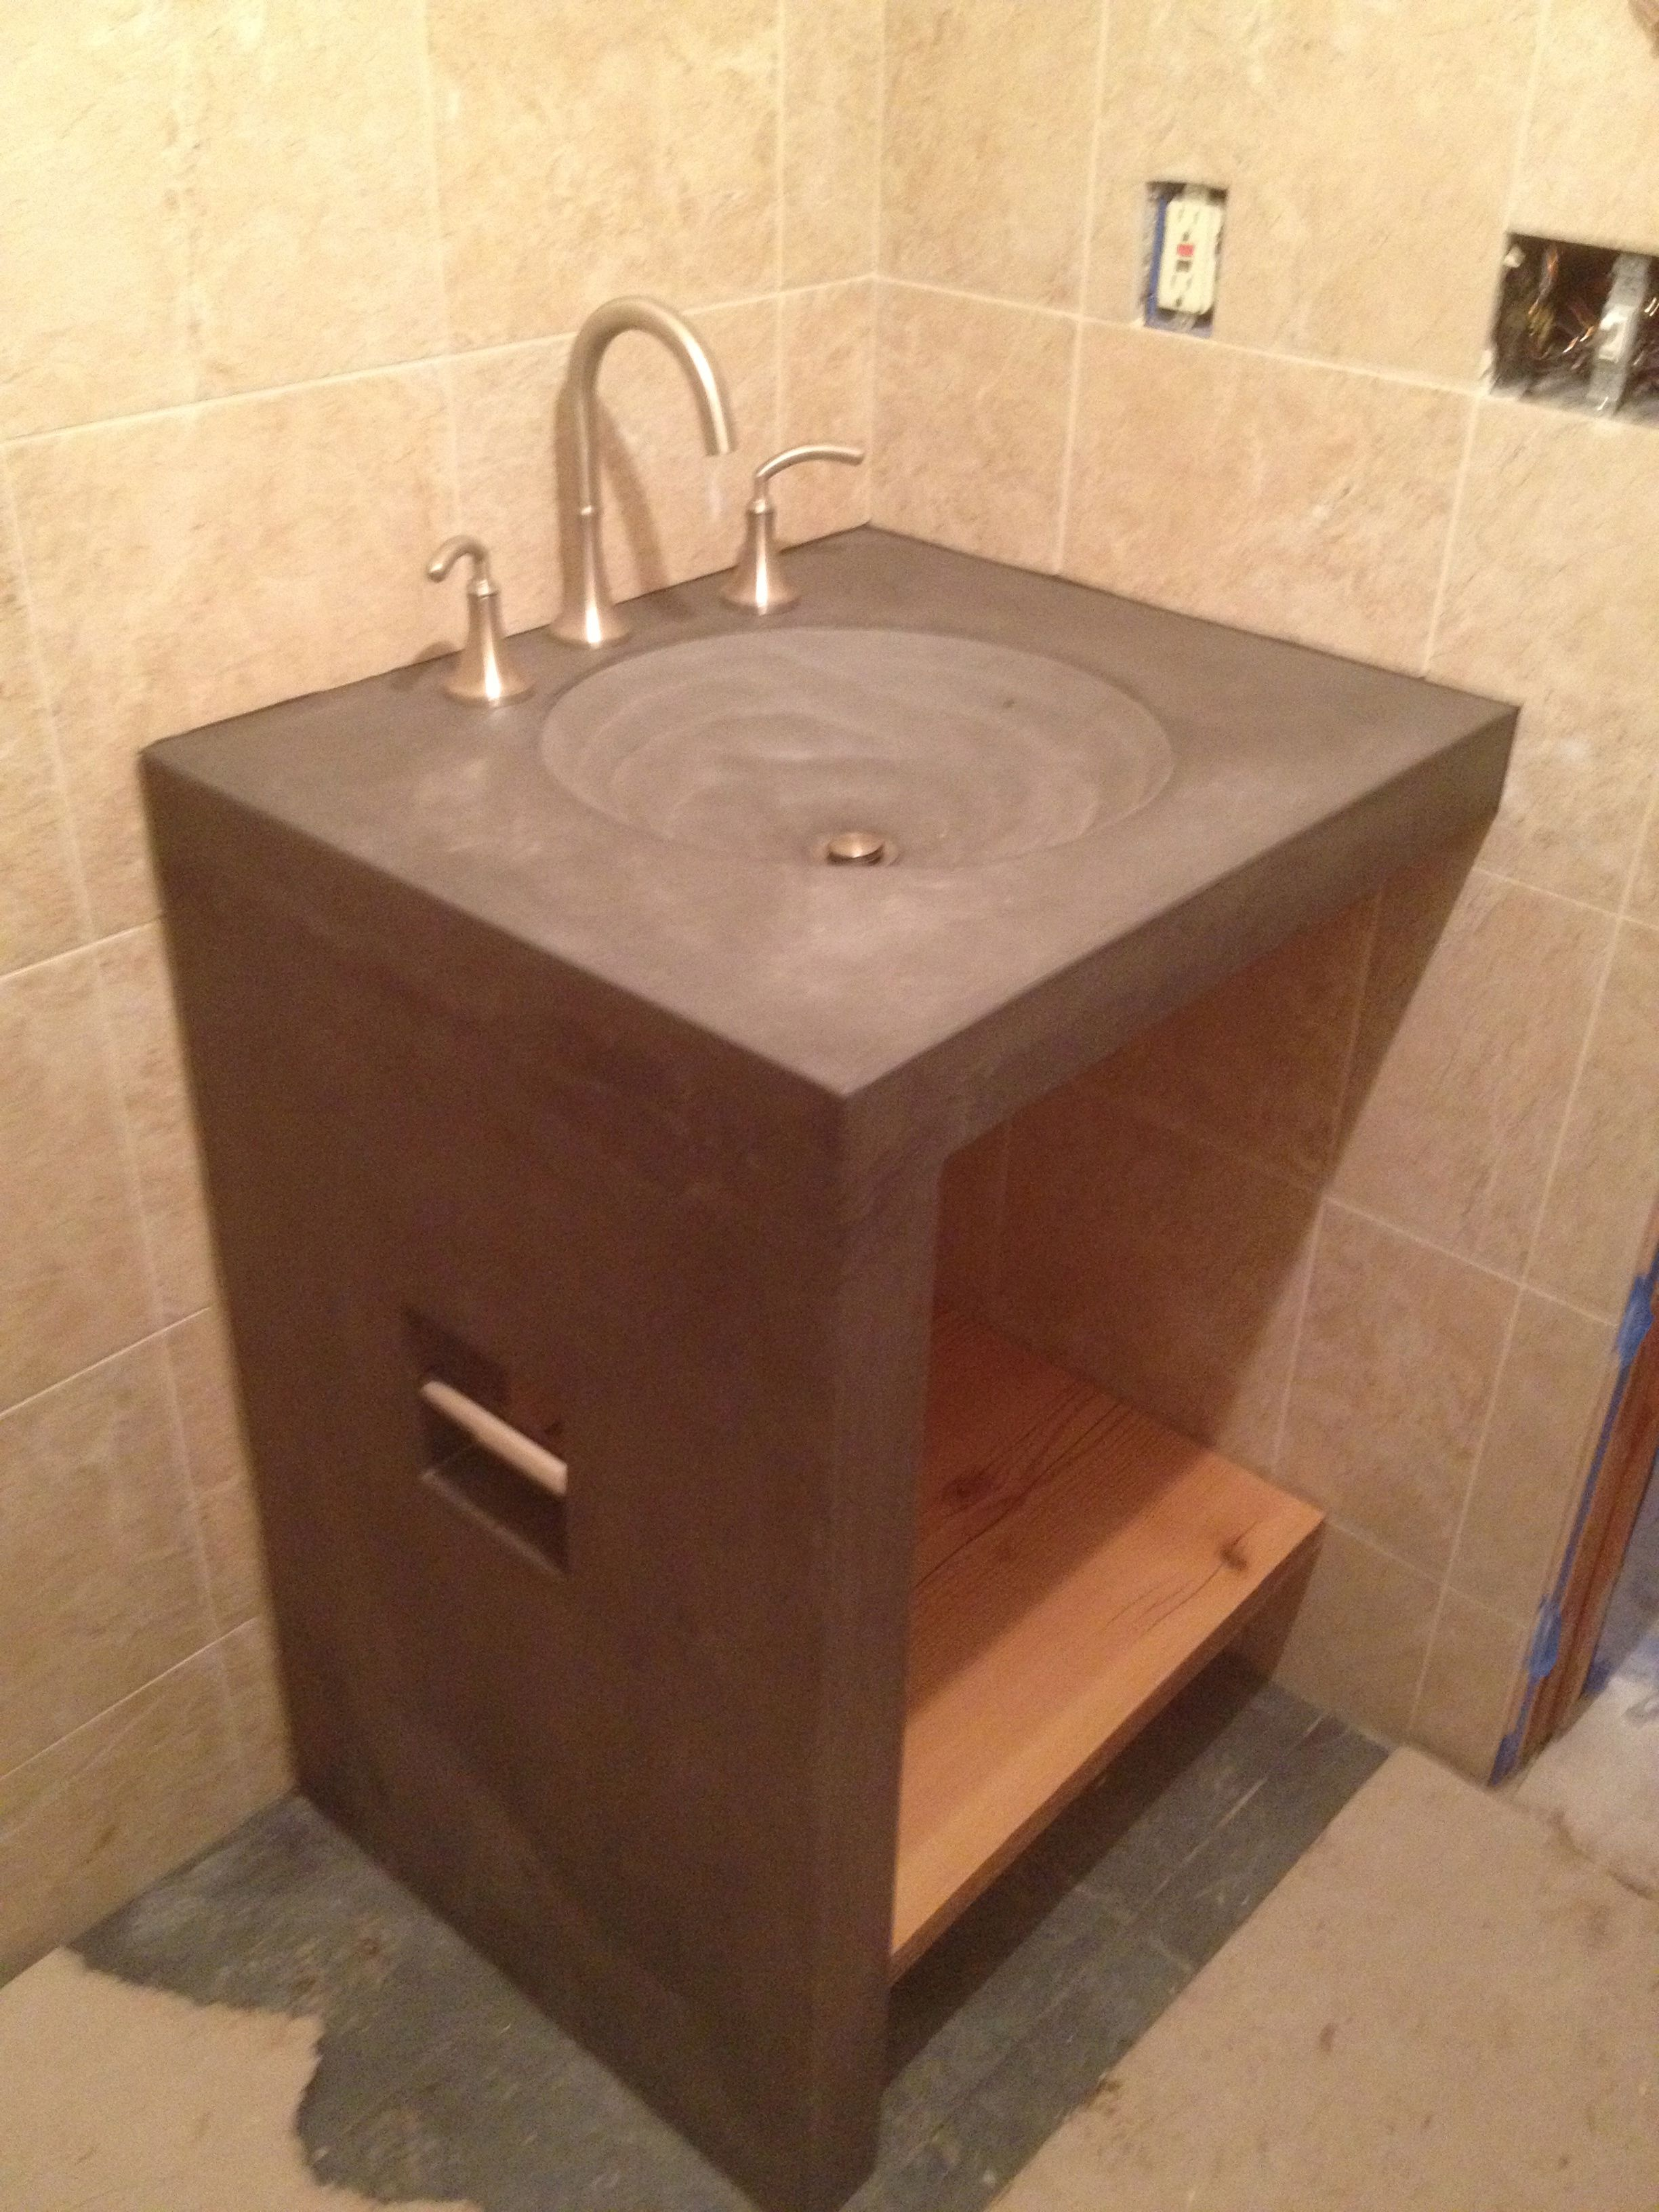 Buy a Custom Bathroom Sink/Base, Shower Bench With Rock And Concrete ...